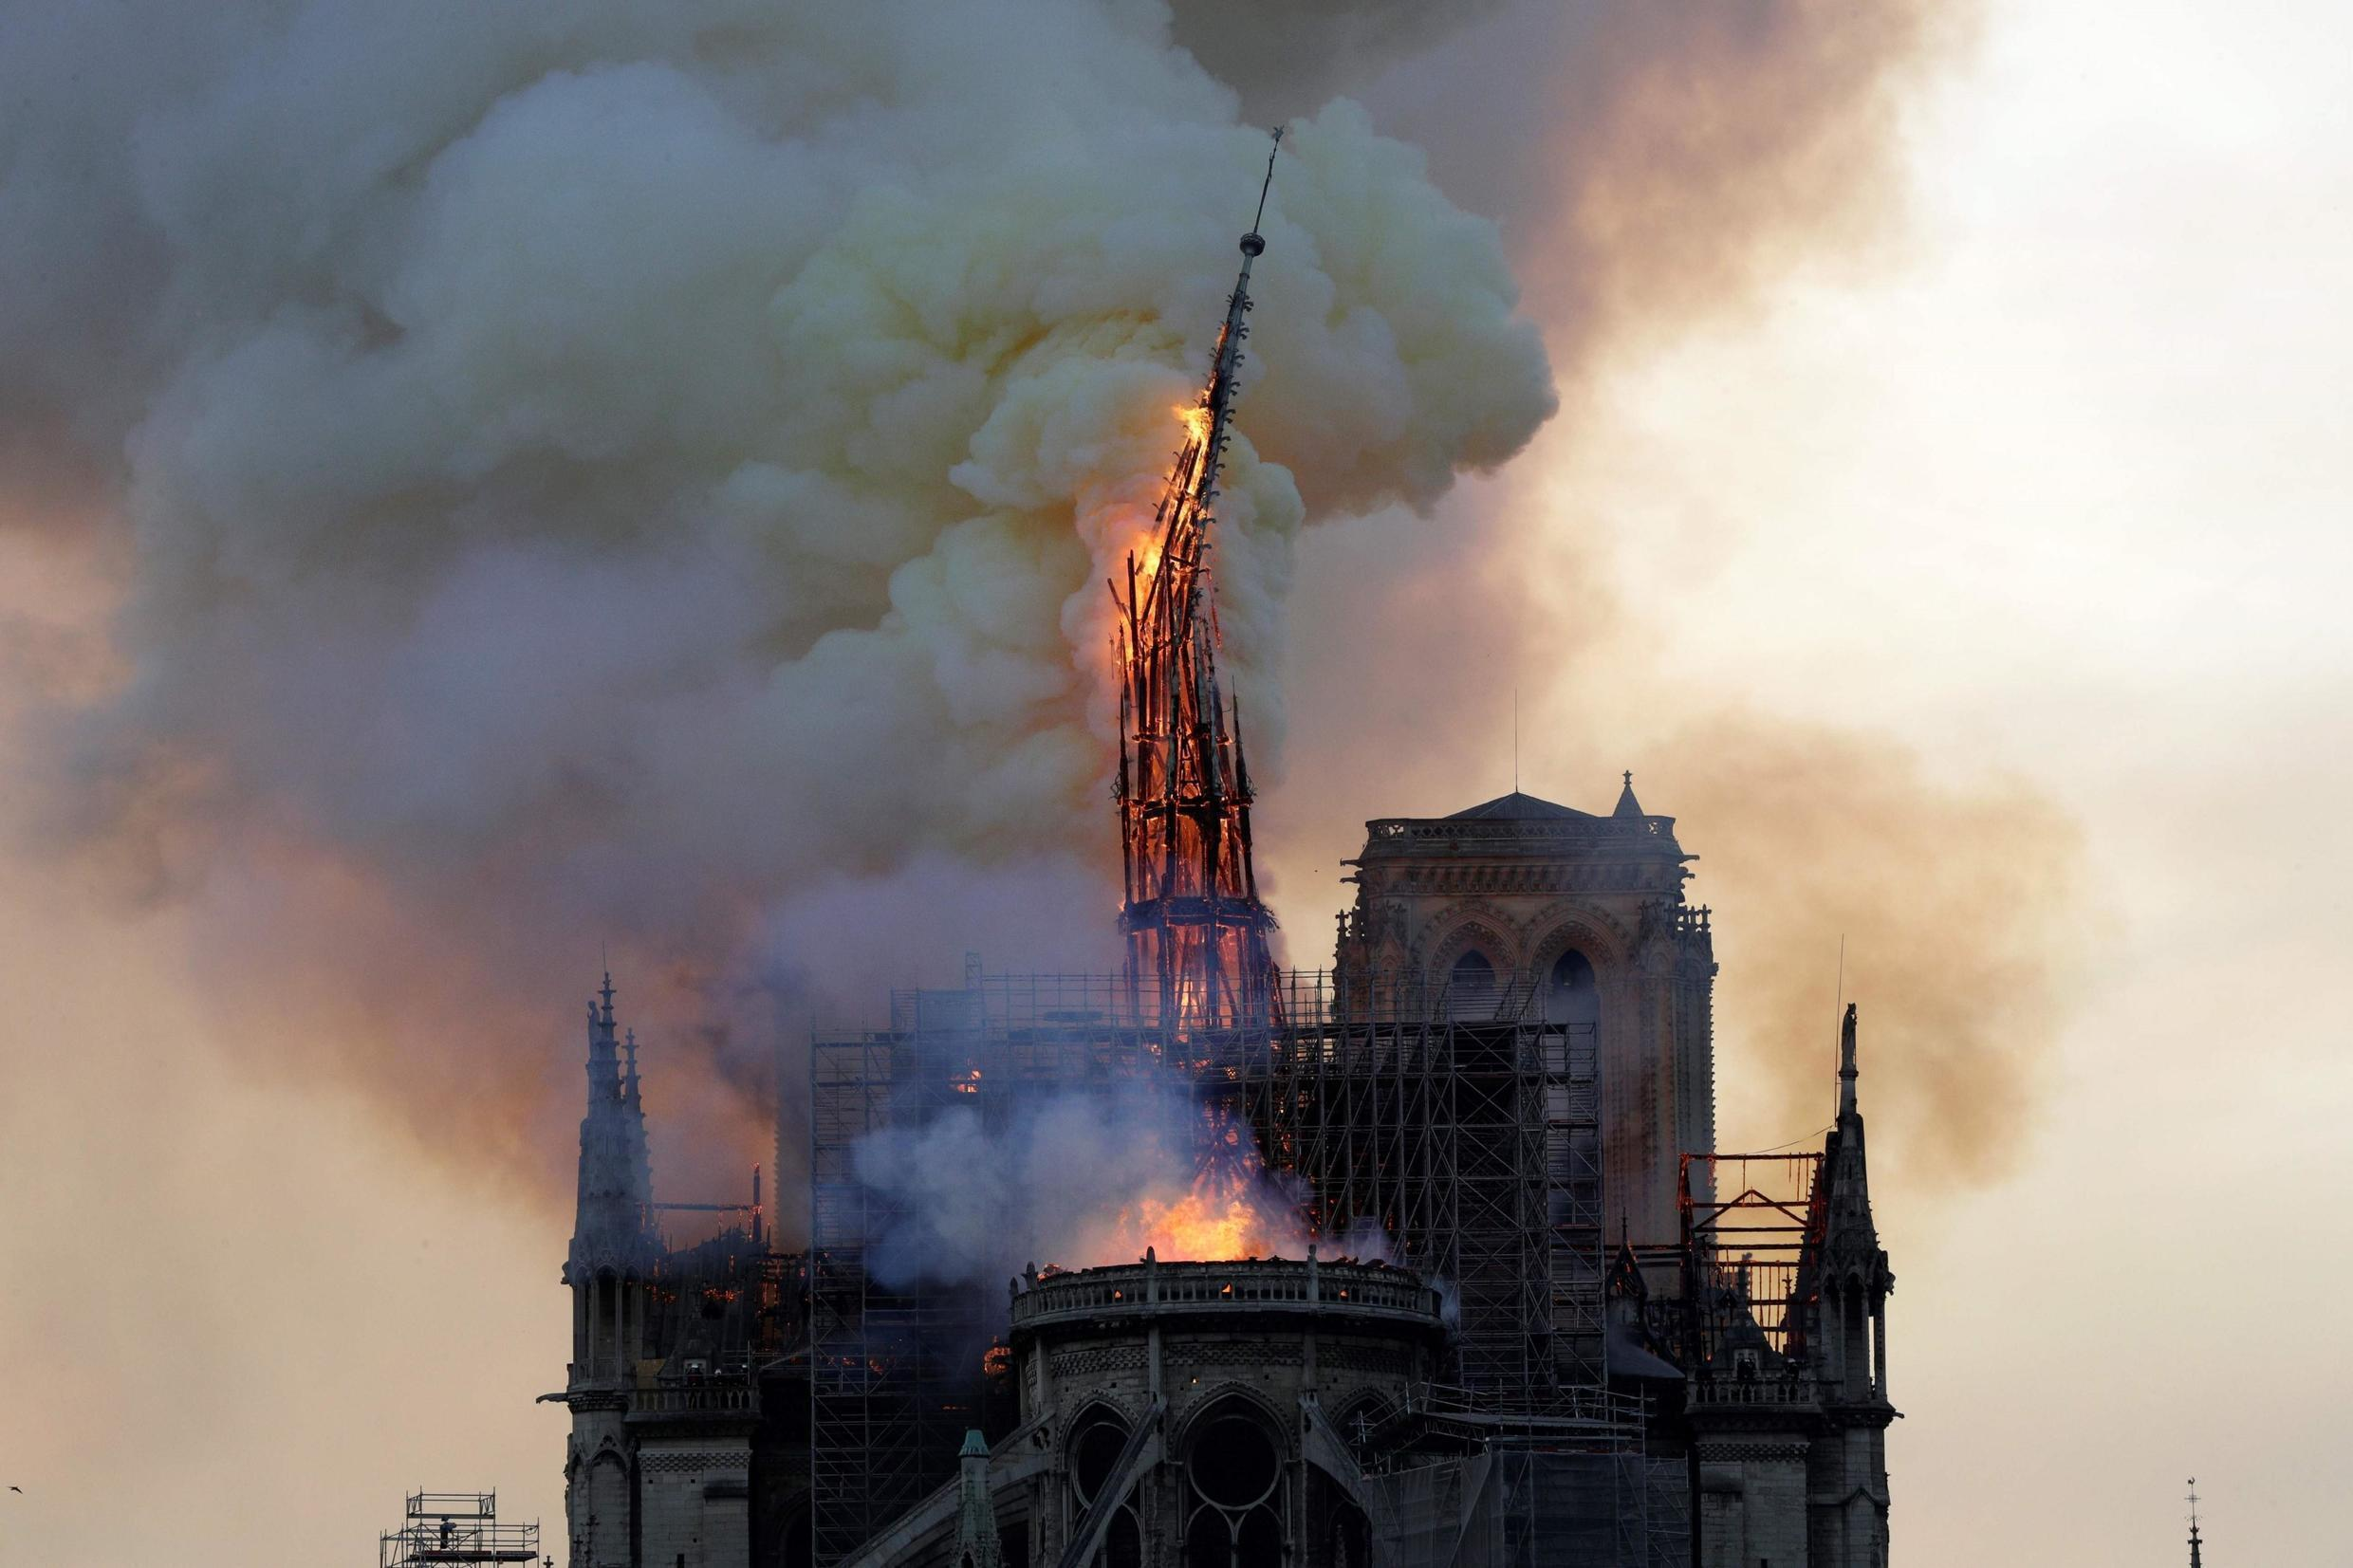 Notre Dame, part of a UNESCO world heritage site on the banks of the River Seine, lost its Gothic spire, roof and many precious artefacts in the fire, which was watched by huge crowds on 15 April 2019.